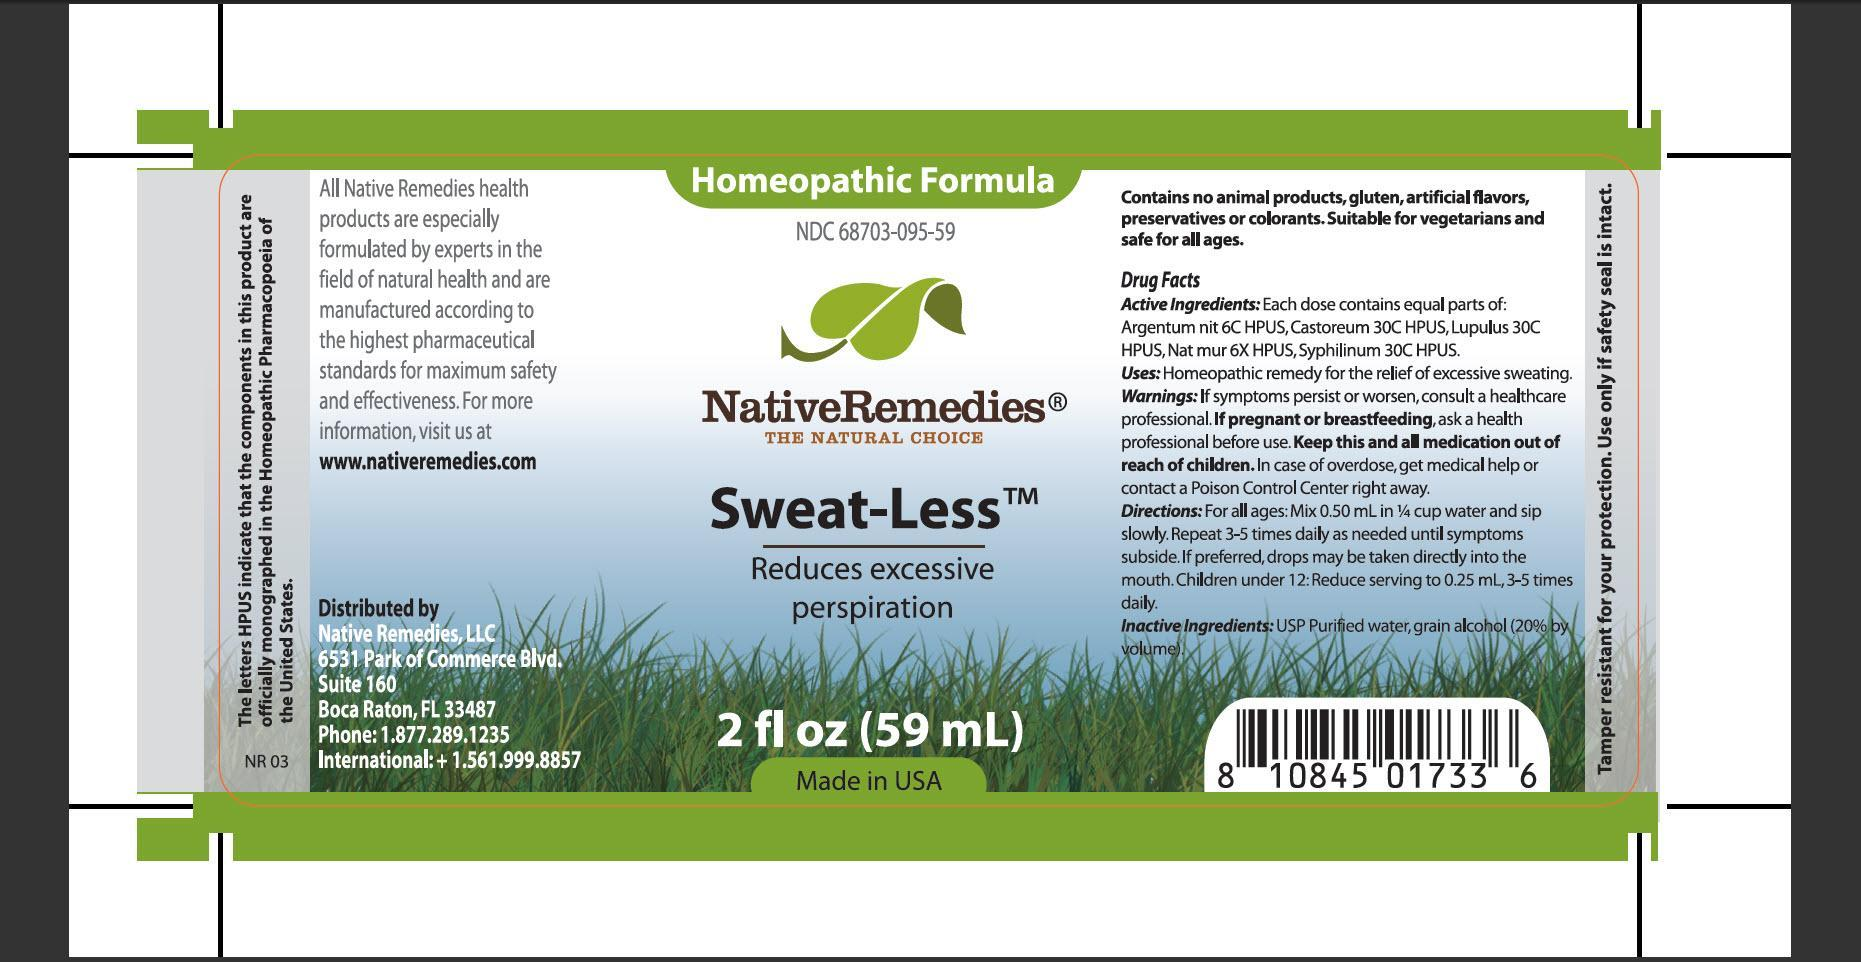 Sweat Less (Argentum Nit, Castoreum, Lupulus, Nat Mur, Syphilinum) Tincture [Native Remedies, Llc]